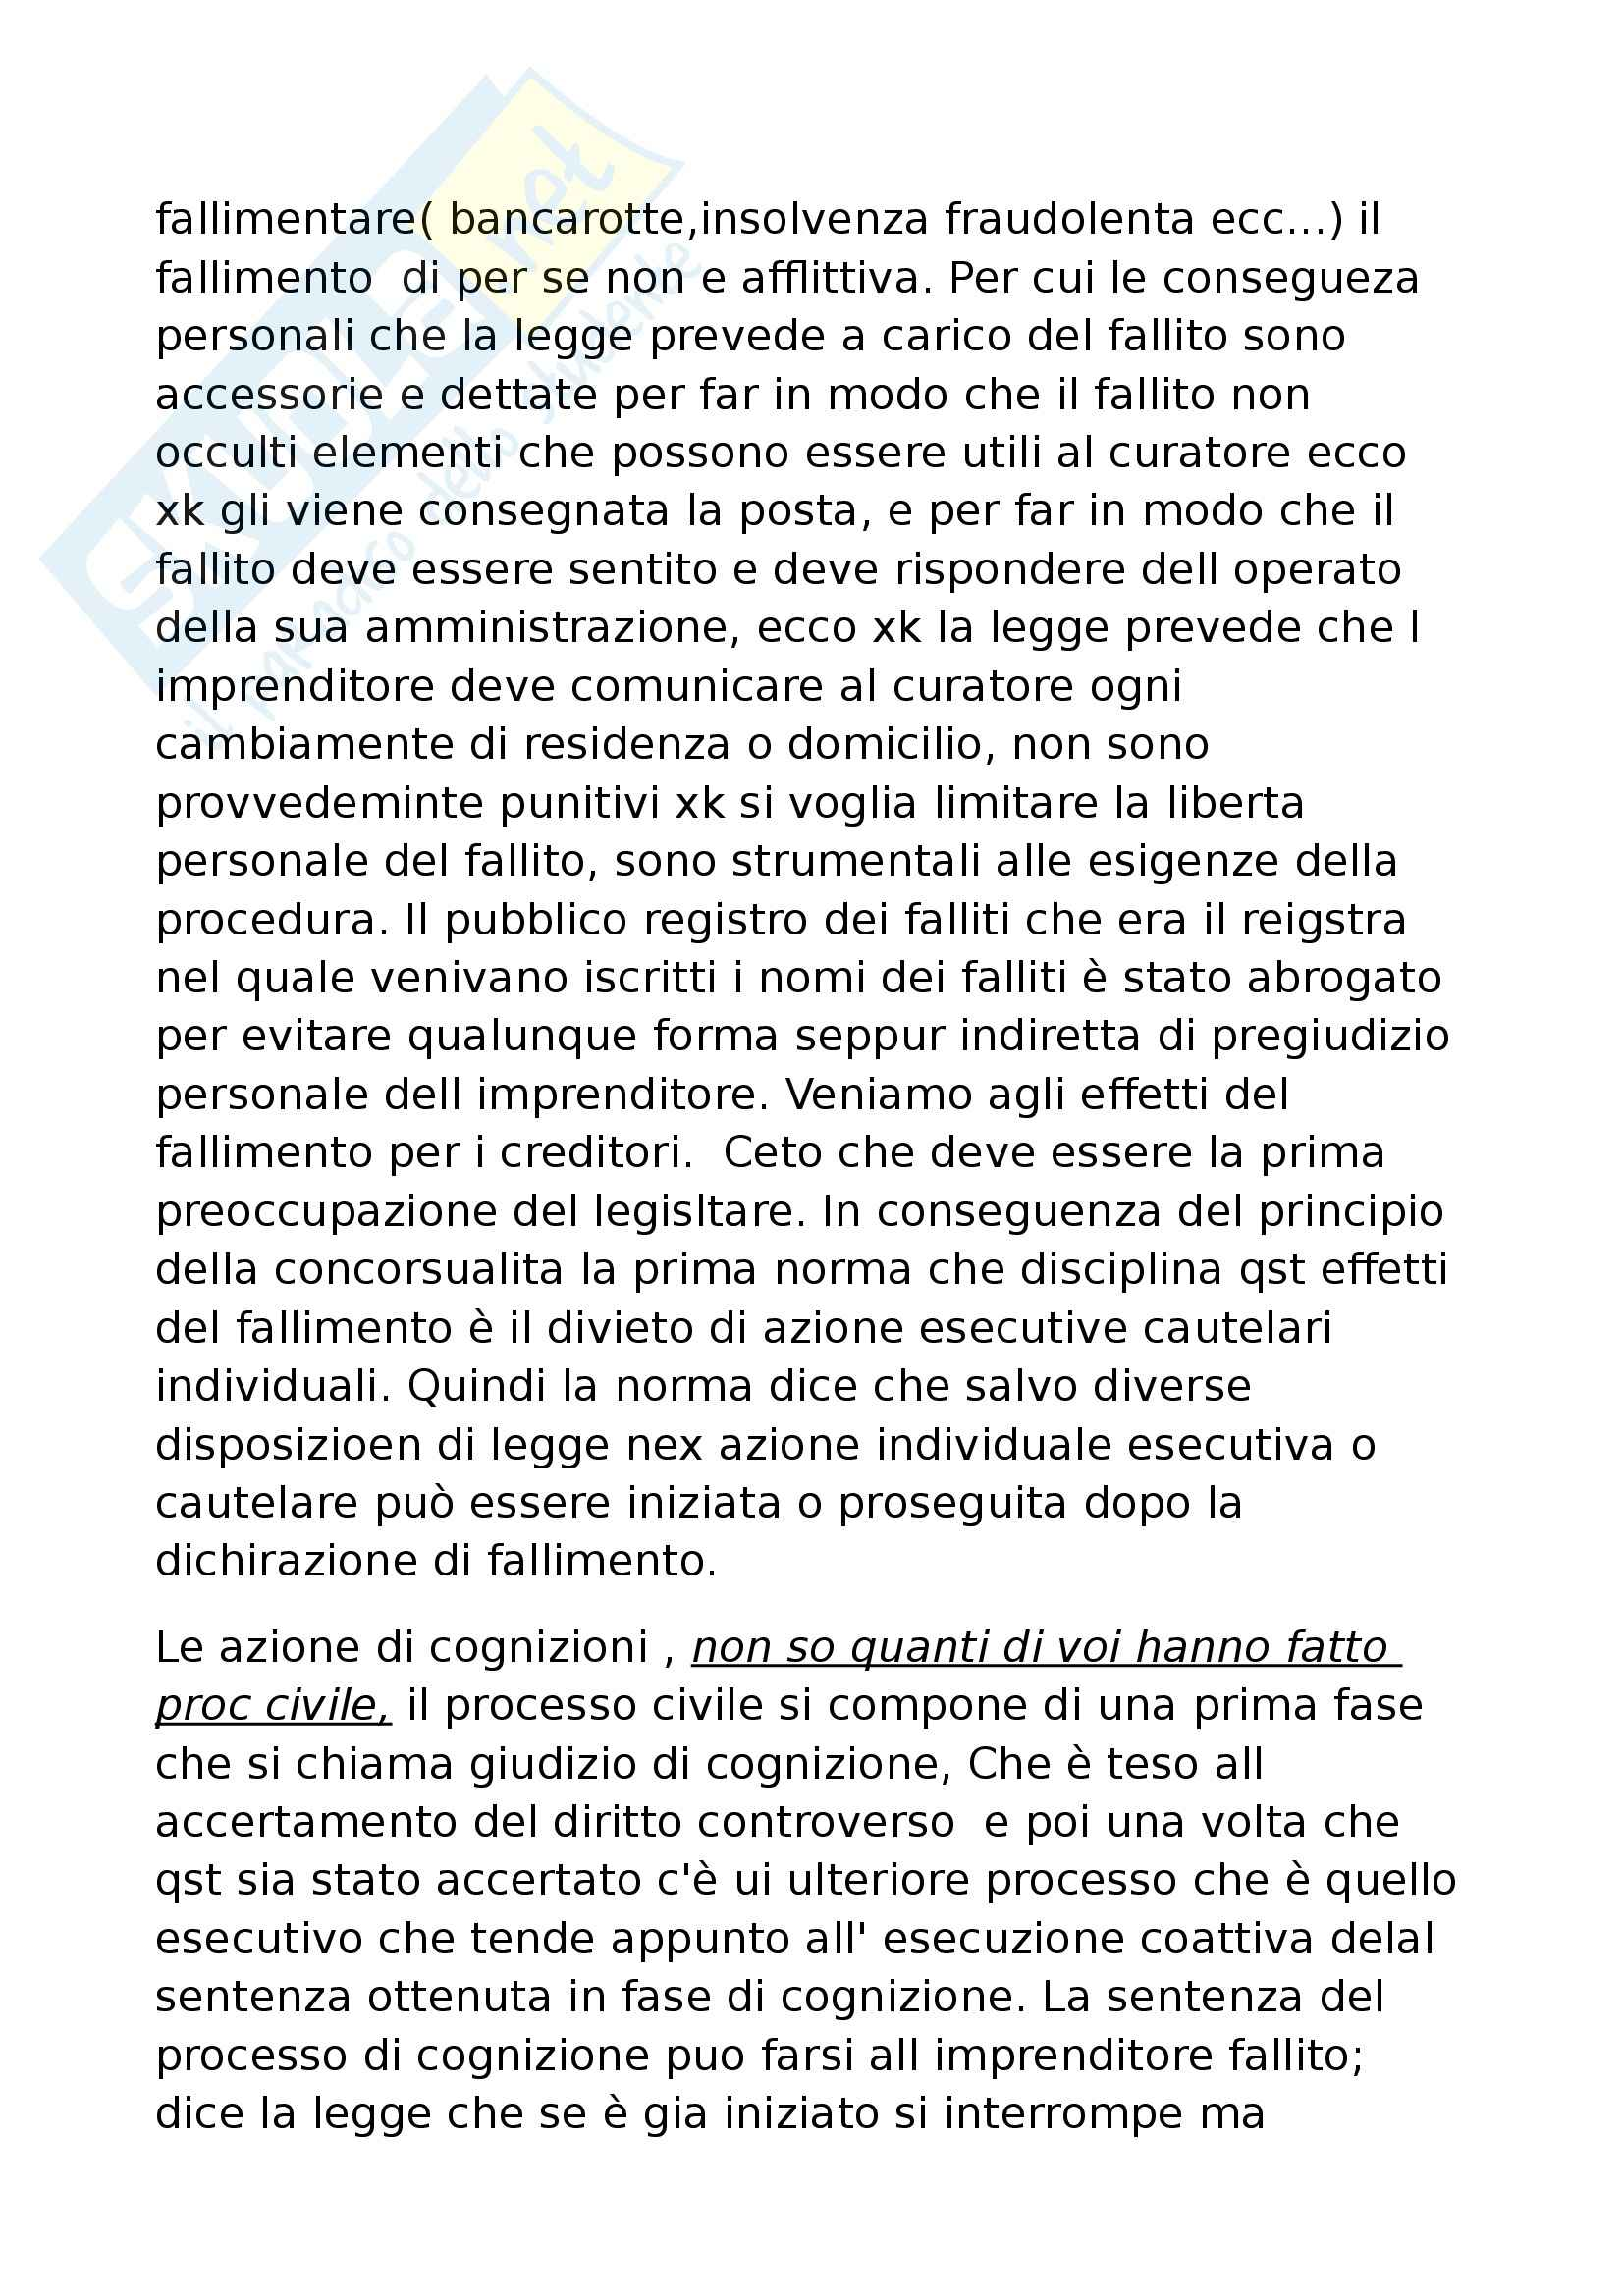 Diritto commerciale - fallimento e procedure concorsuali Pag. 11